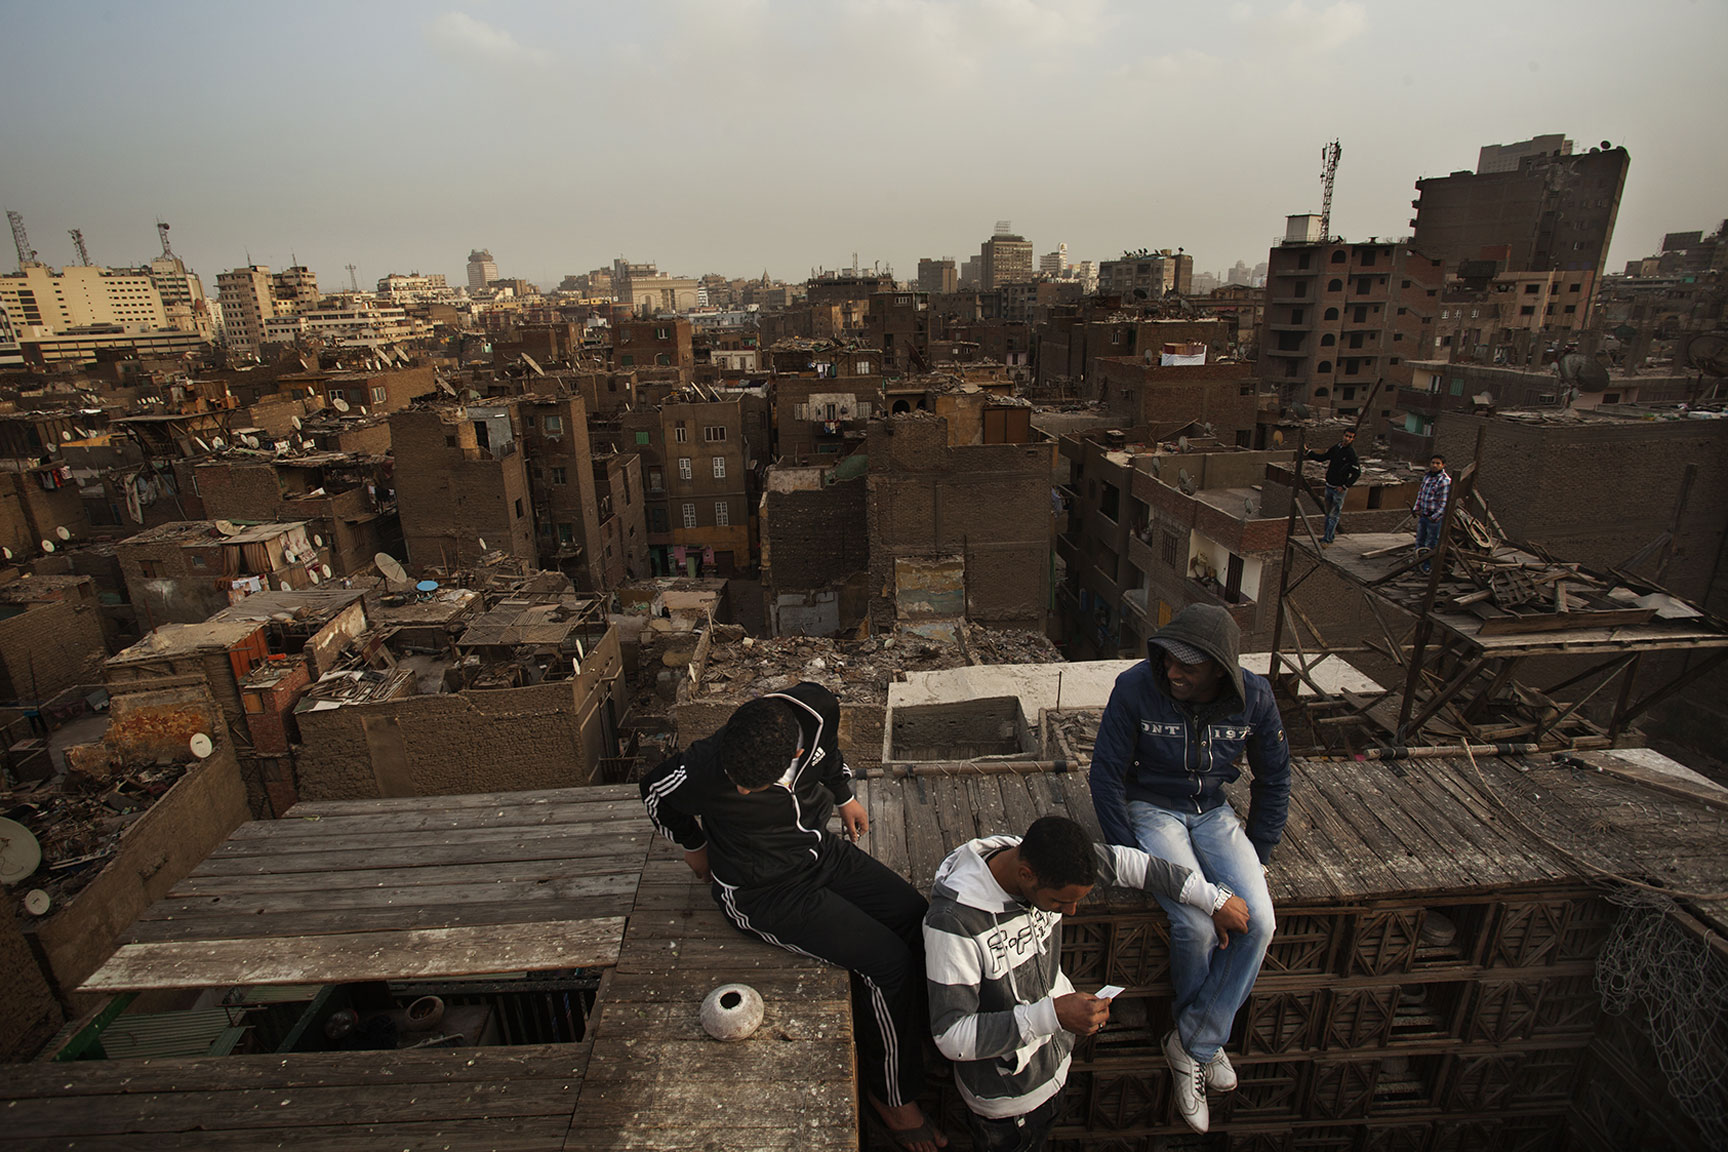 EGYPT_HOUSING_MASPERO_20120228_1086-copy.jpg